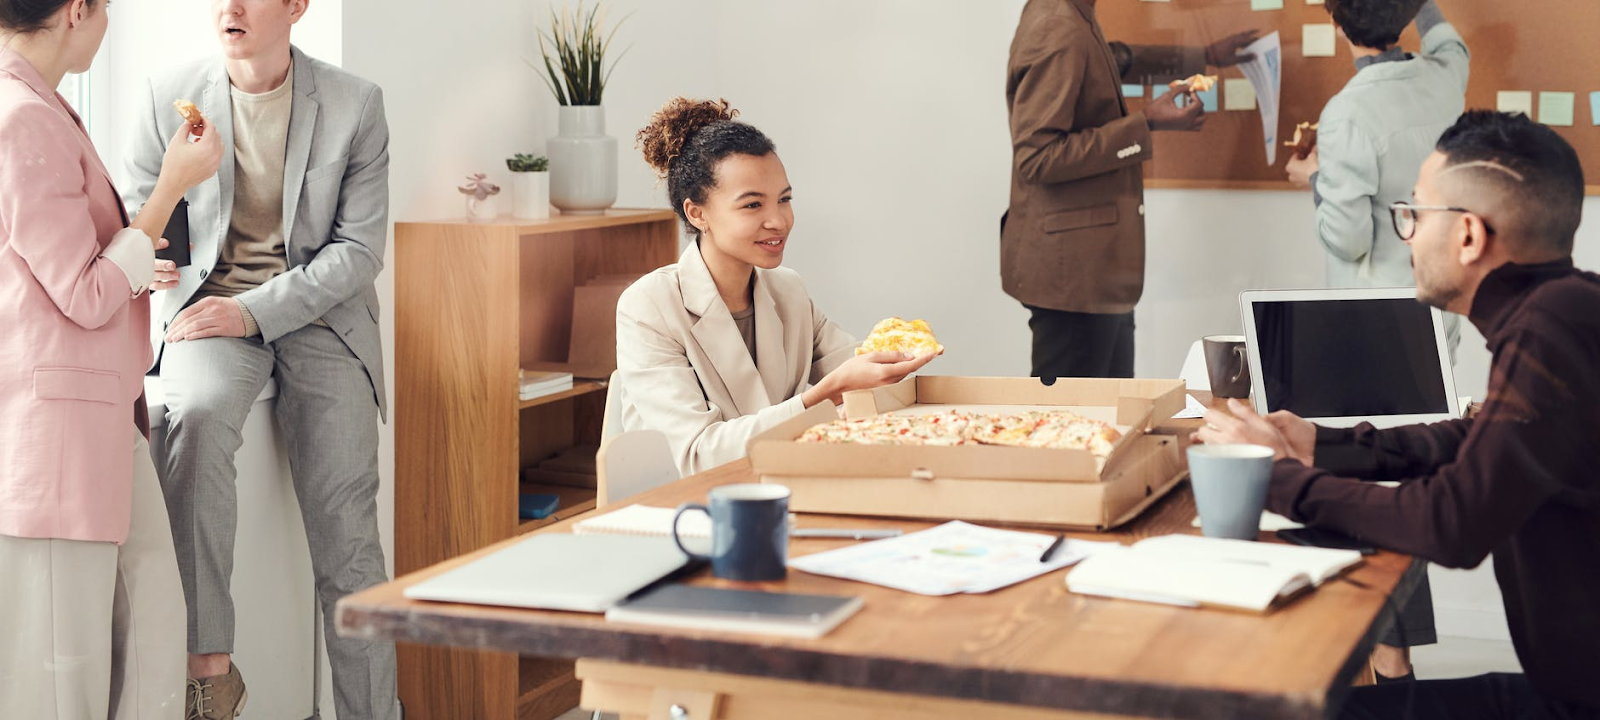 eat smaller meals to stay healthy at work